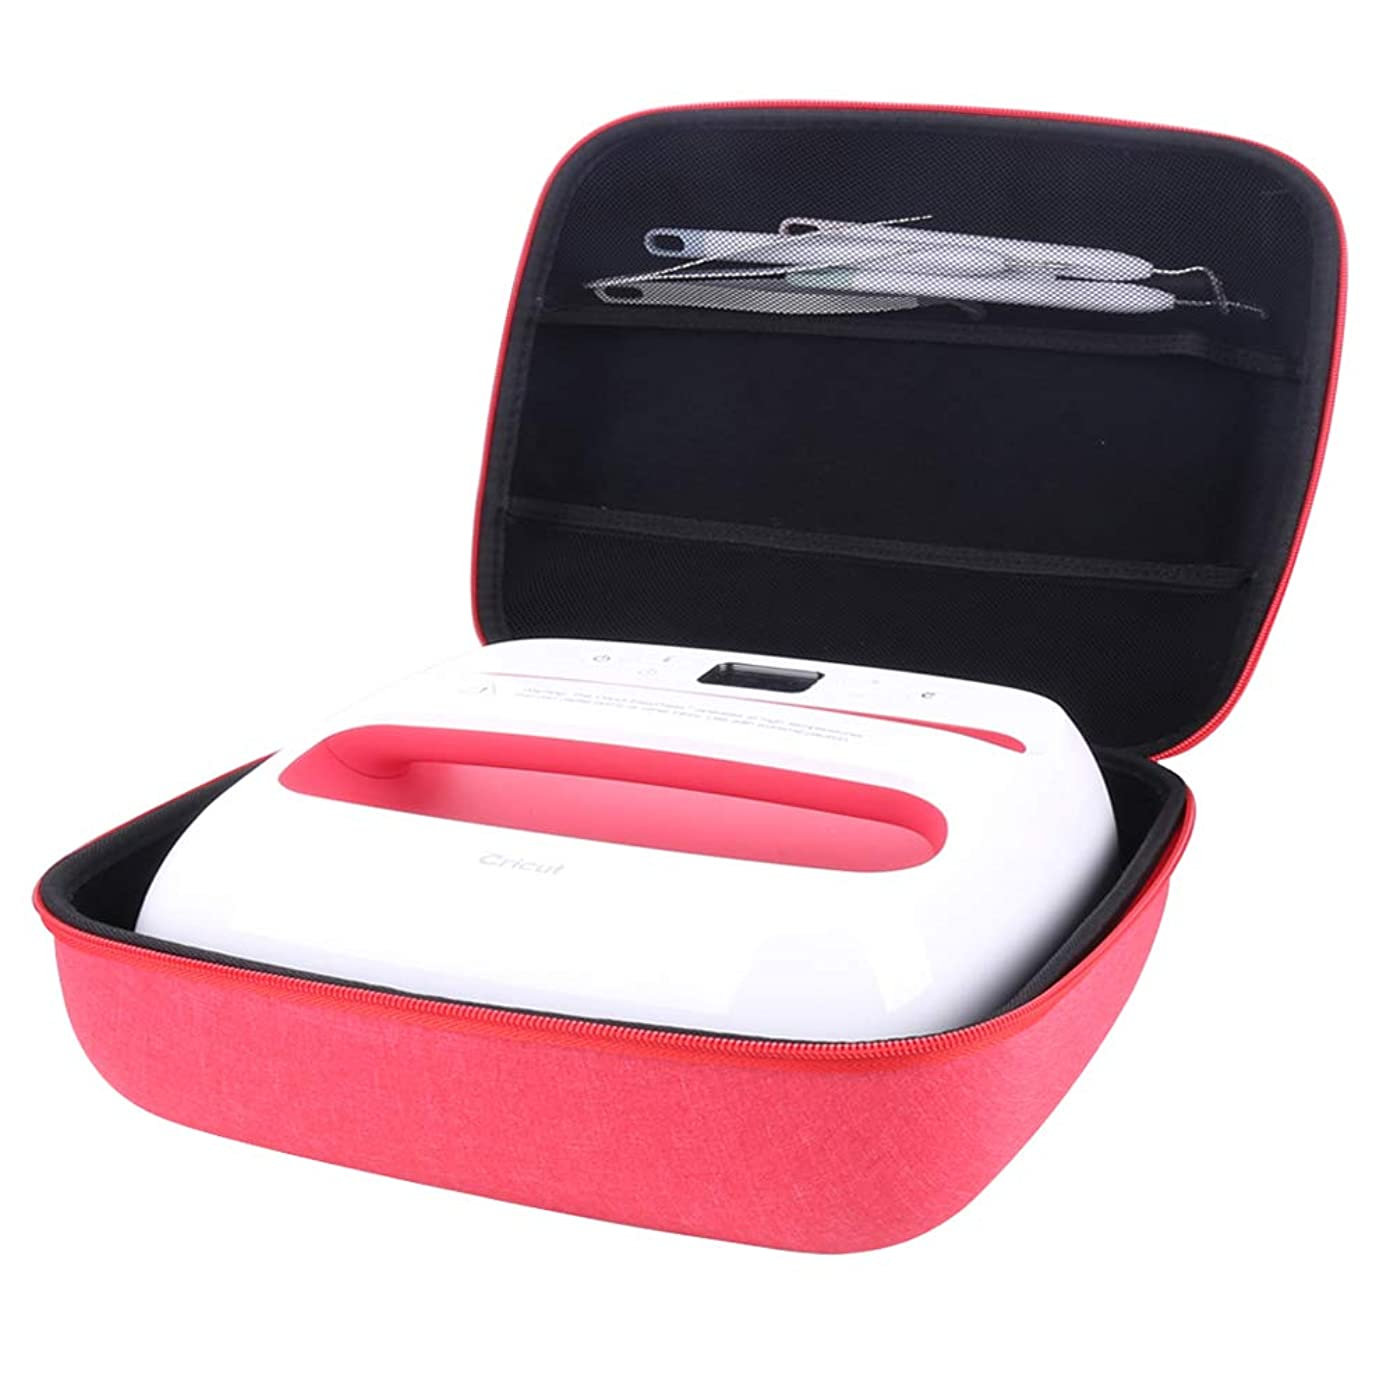 Aenllosi Hard Storage Case Compatible with Cricut EasyPress 2 (red, 12